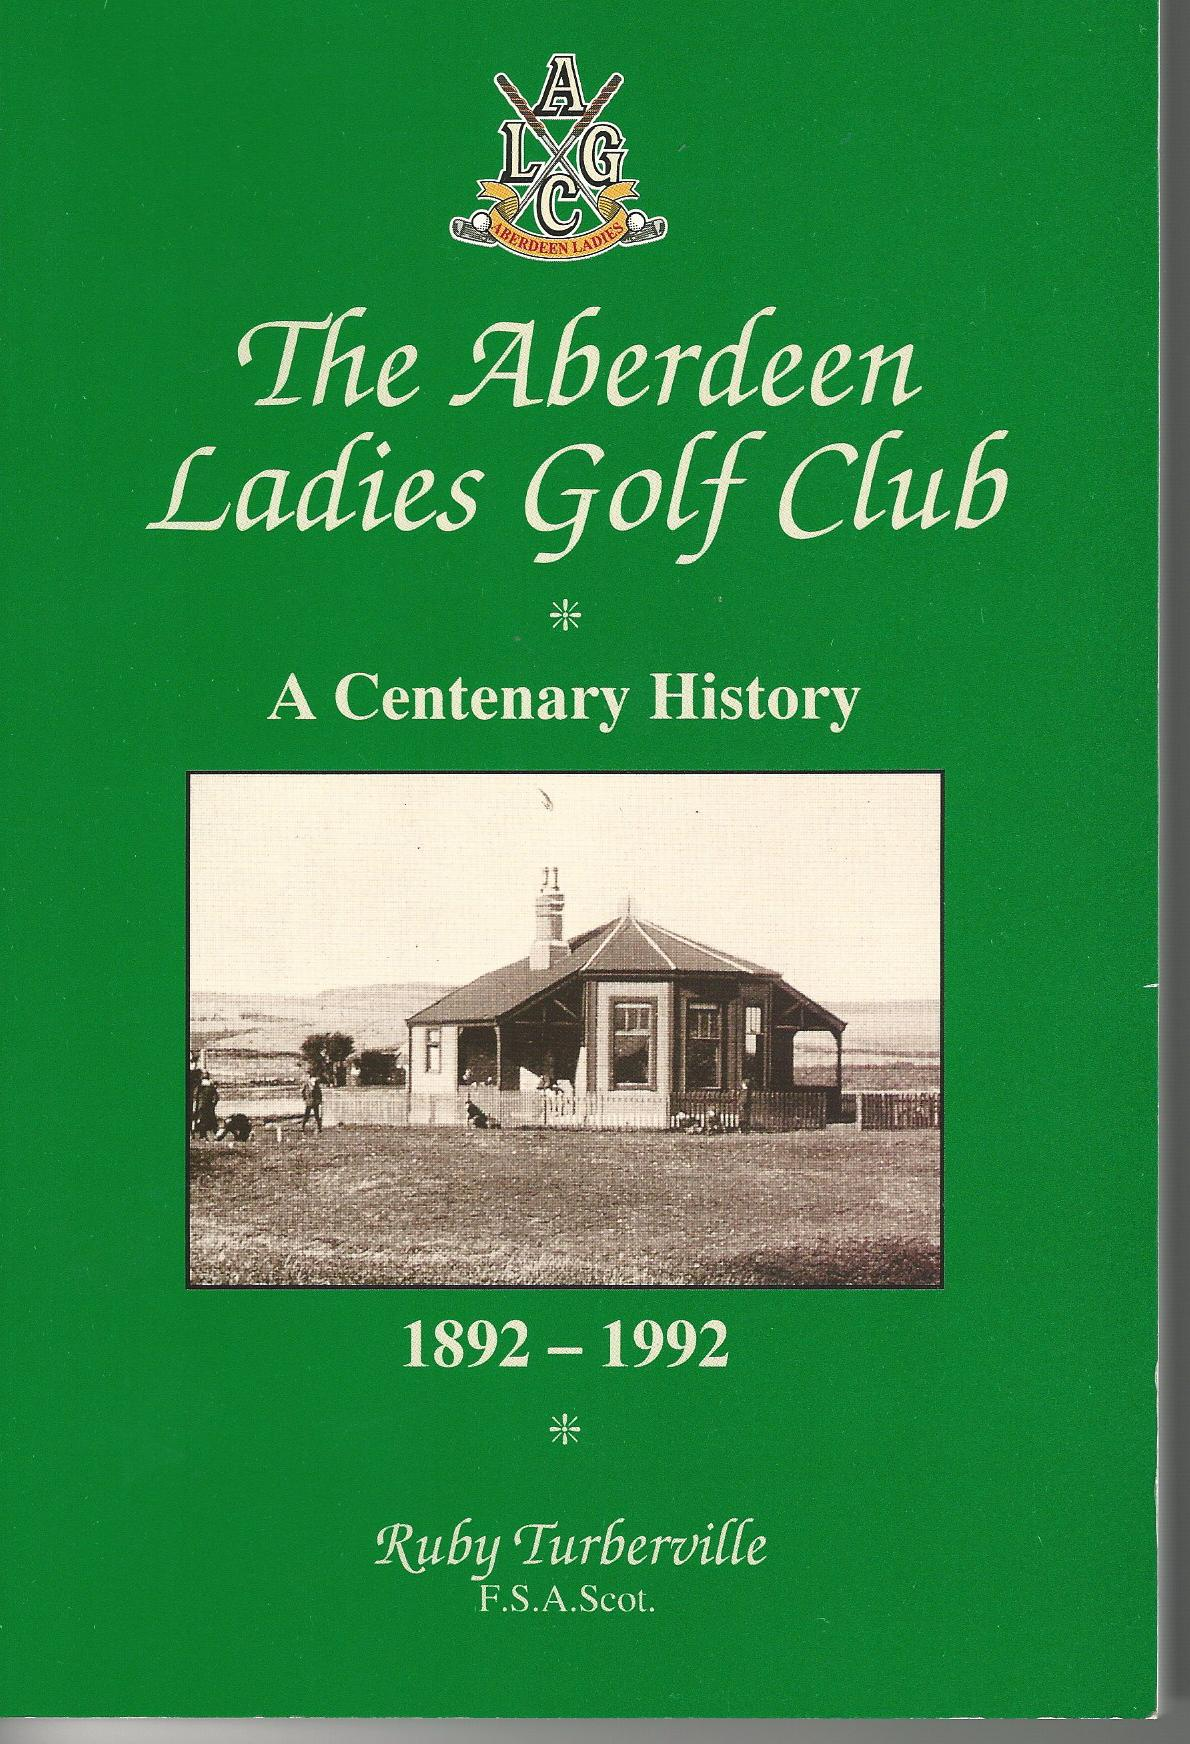 Image for The Aberdeen Ladies Golf Club: A Centenary History 1892 - 1992.